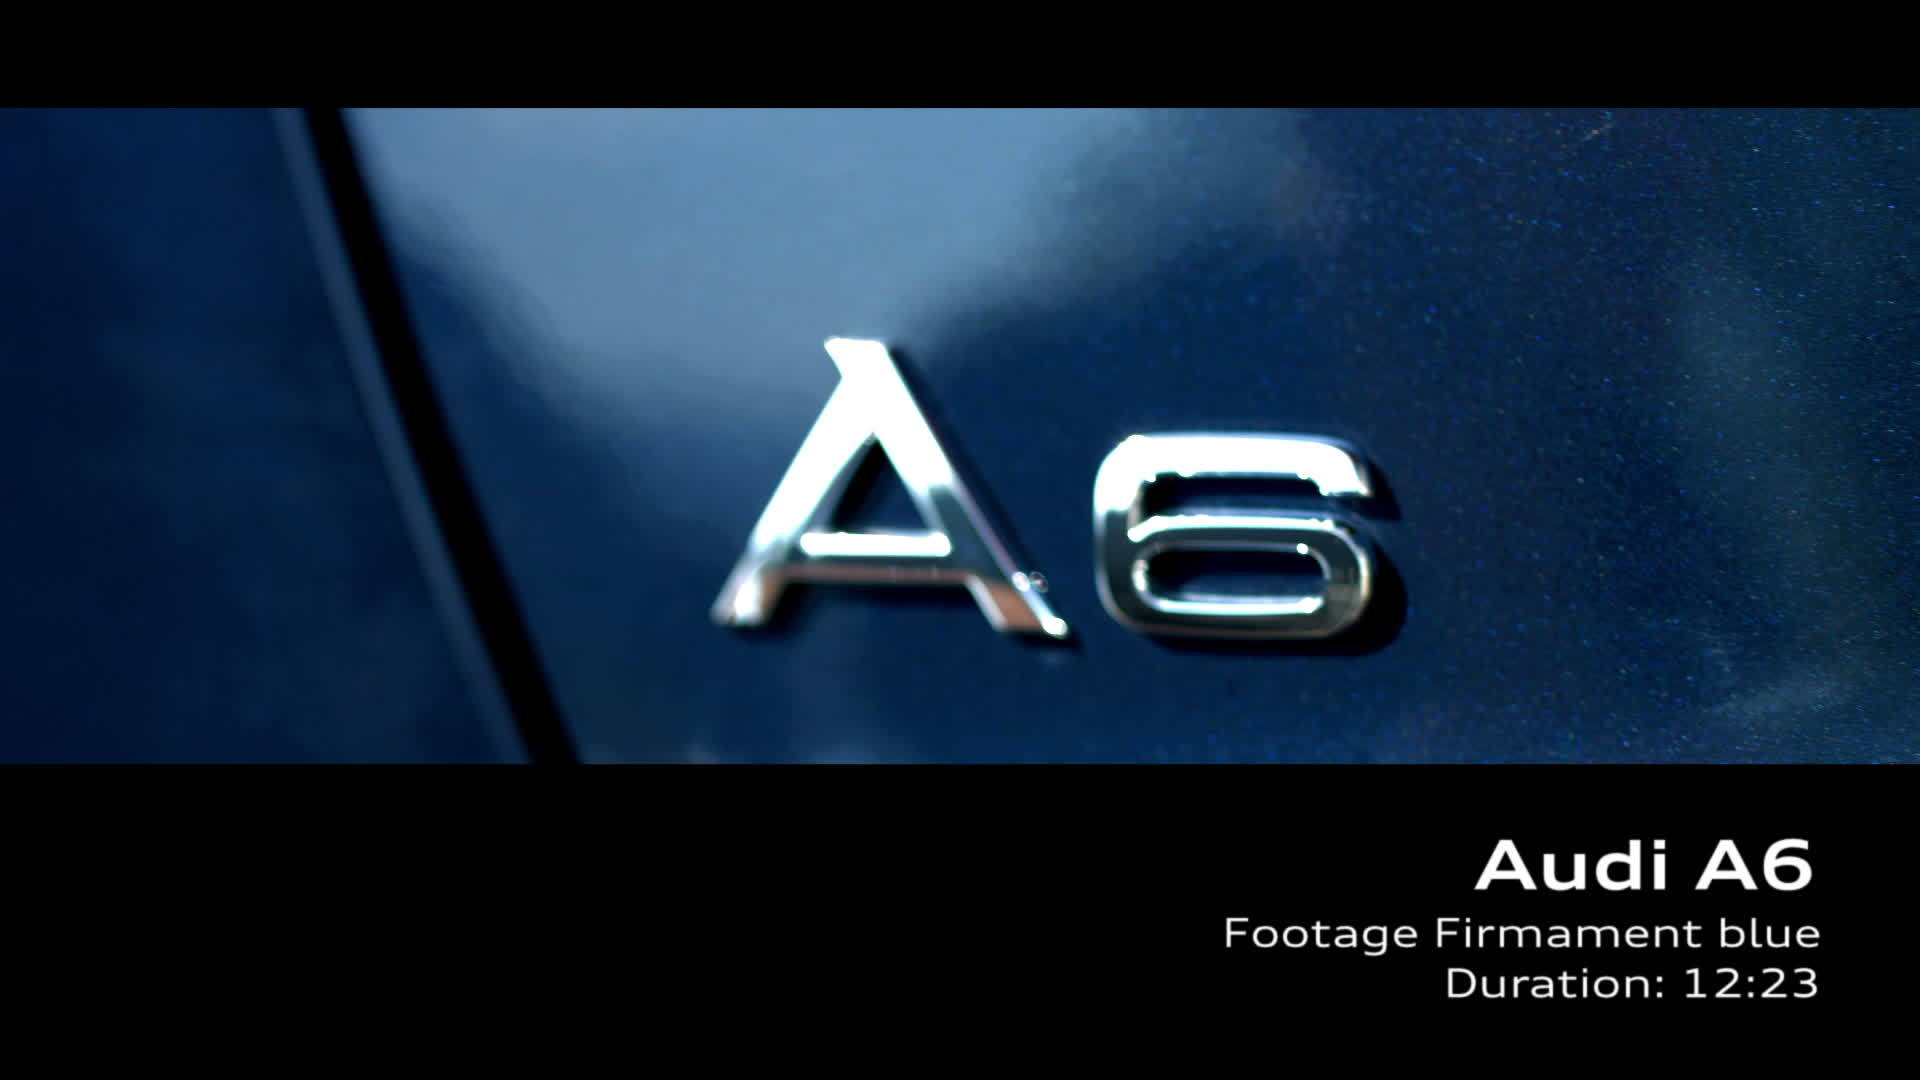 Audi A6 Footage Firmament blue